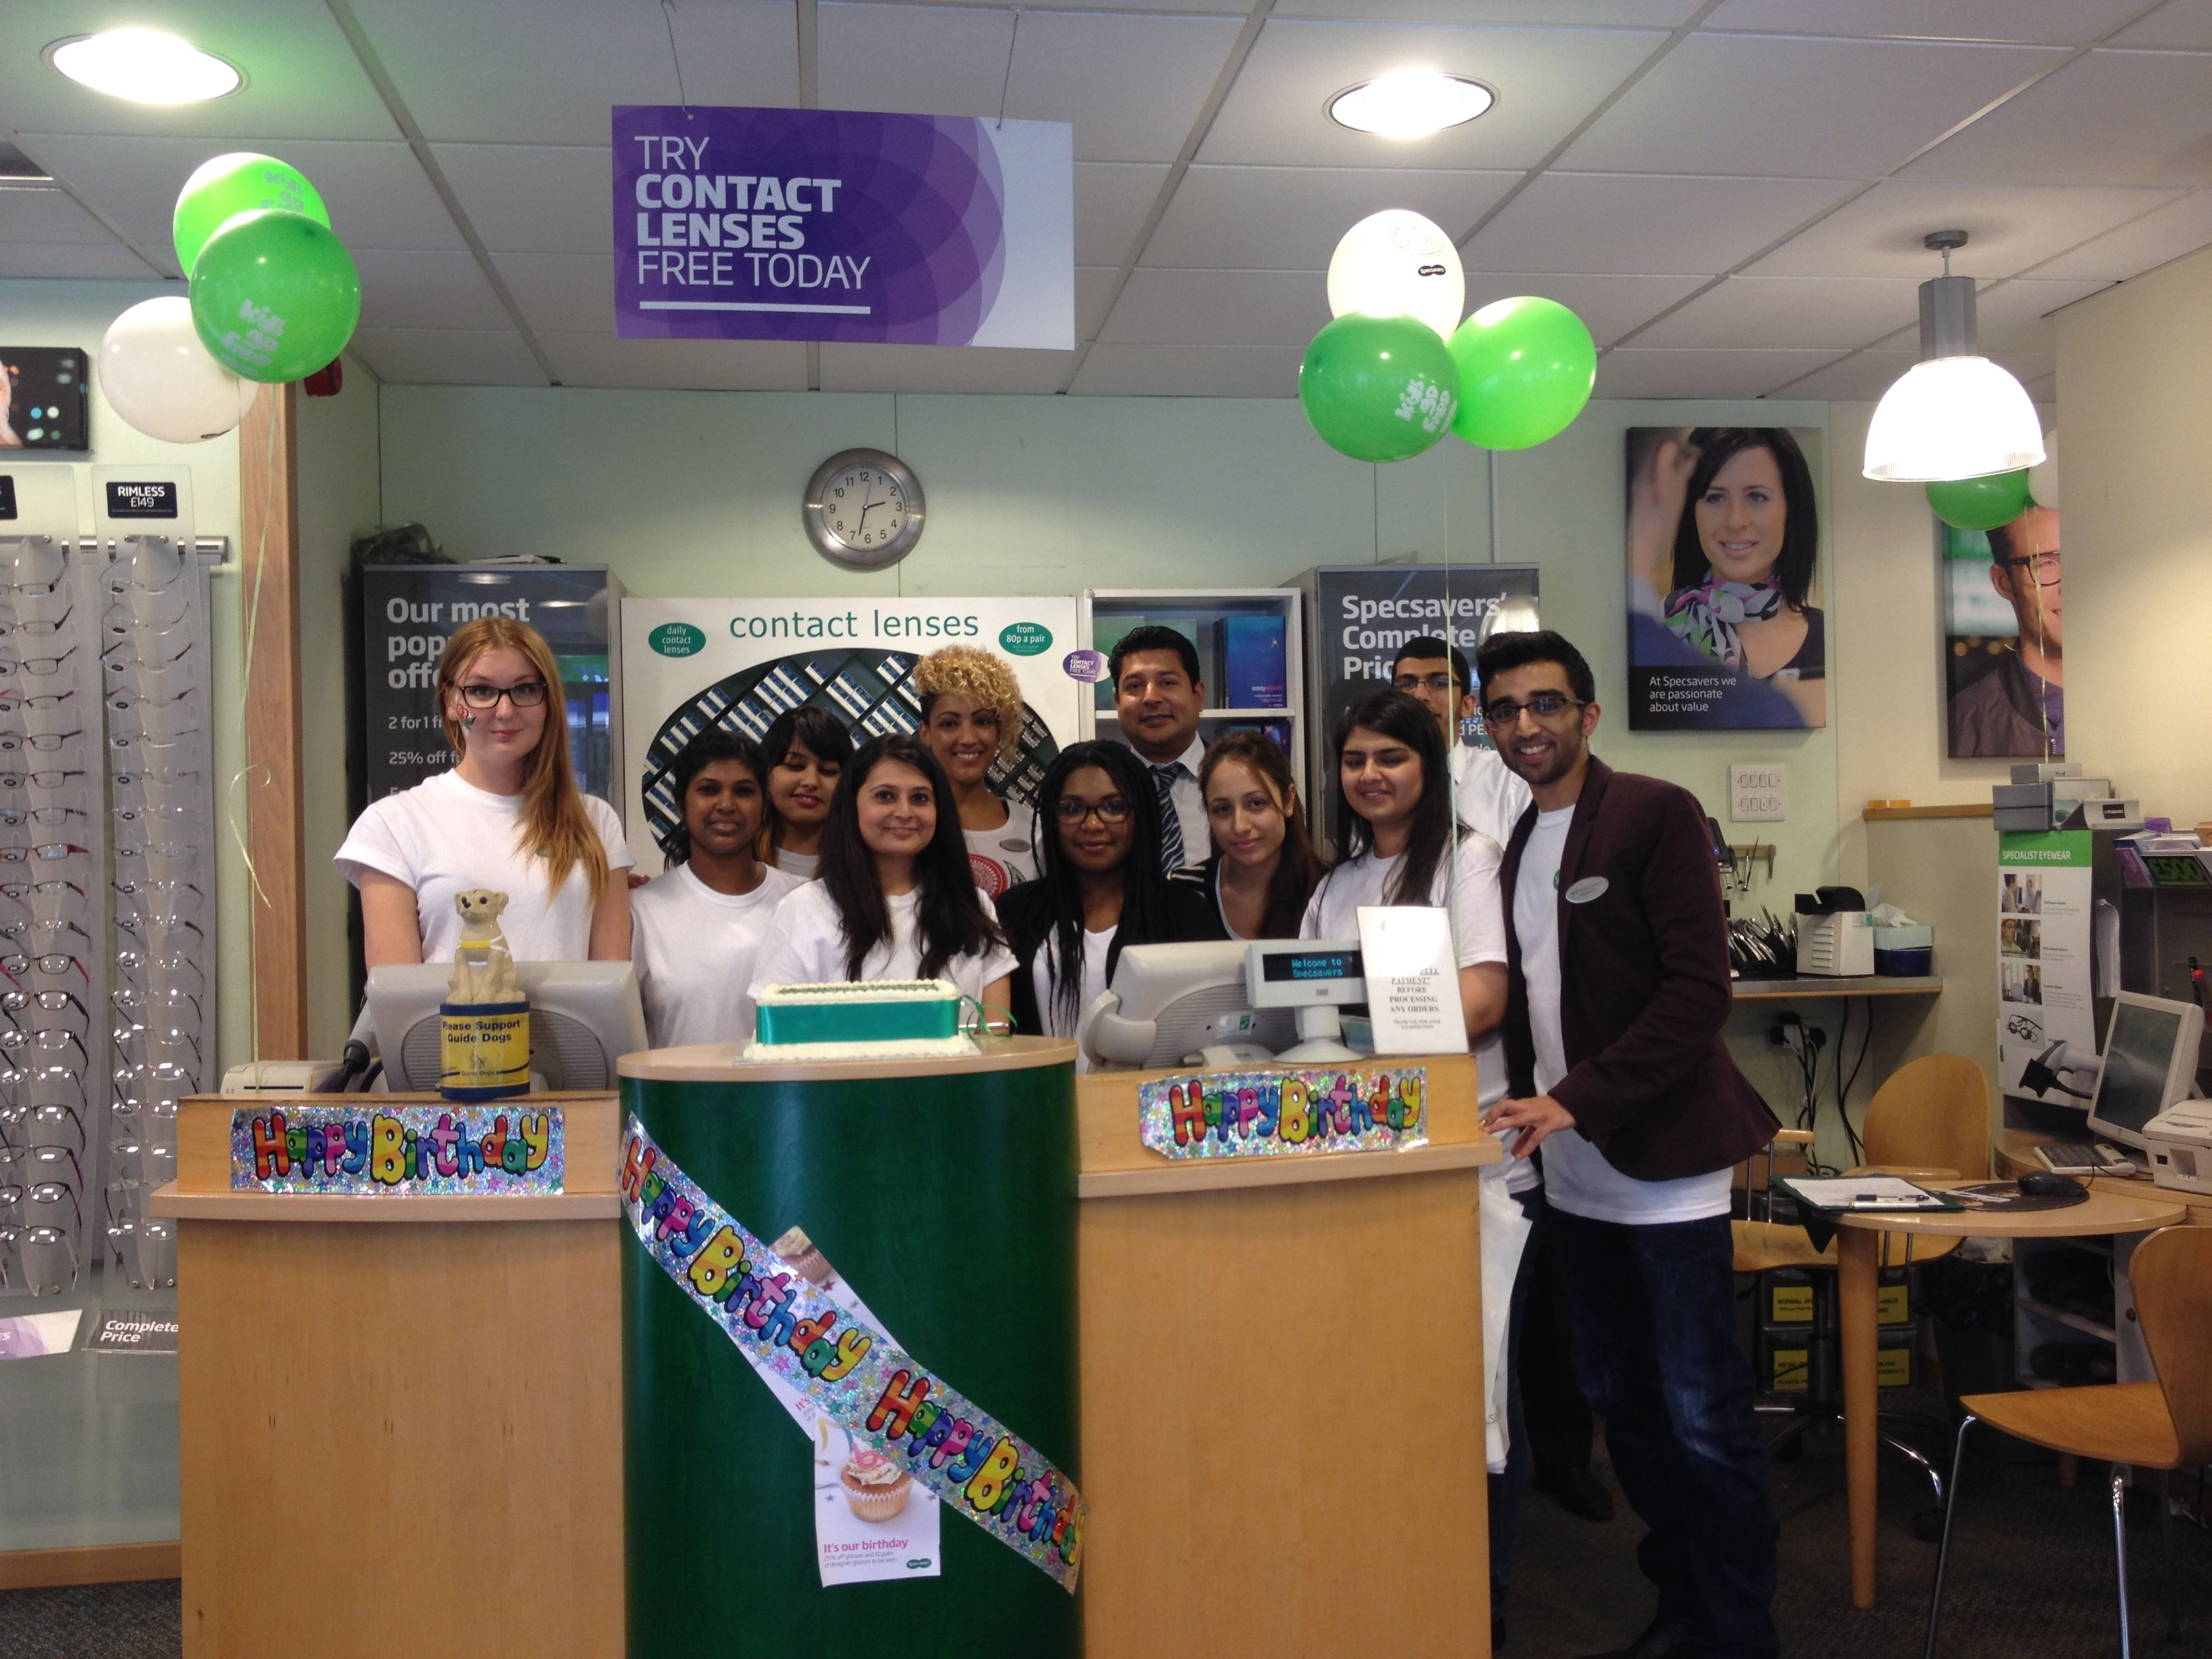 The Bethnal Green Specsavers team